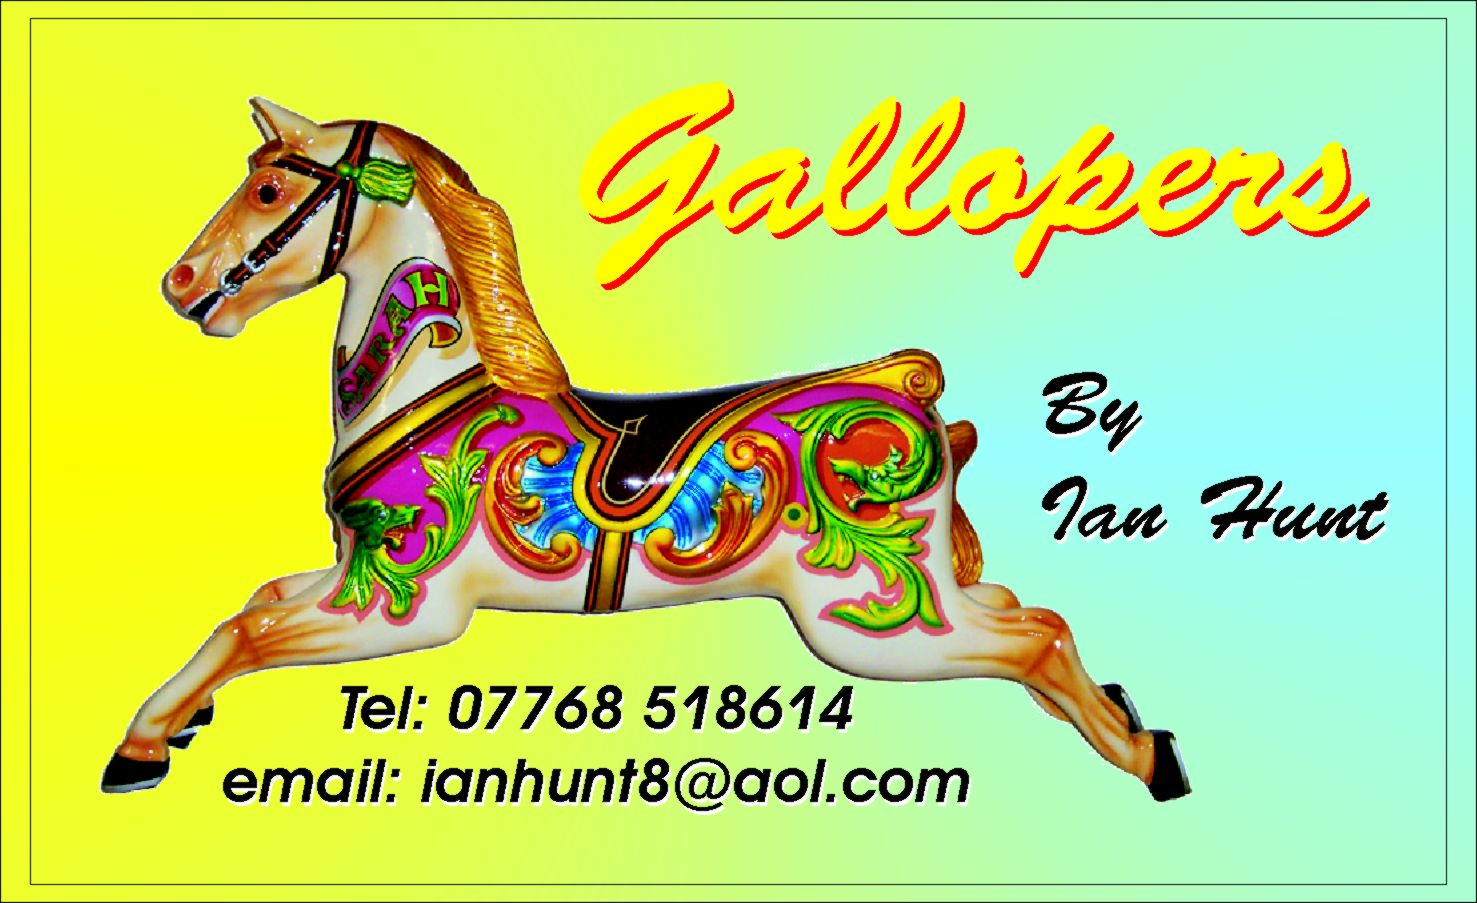 webassets/GALLOPERSBUSINESSCARD.jpg